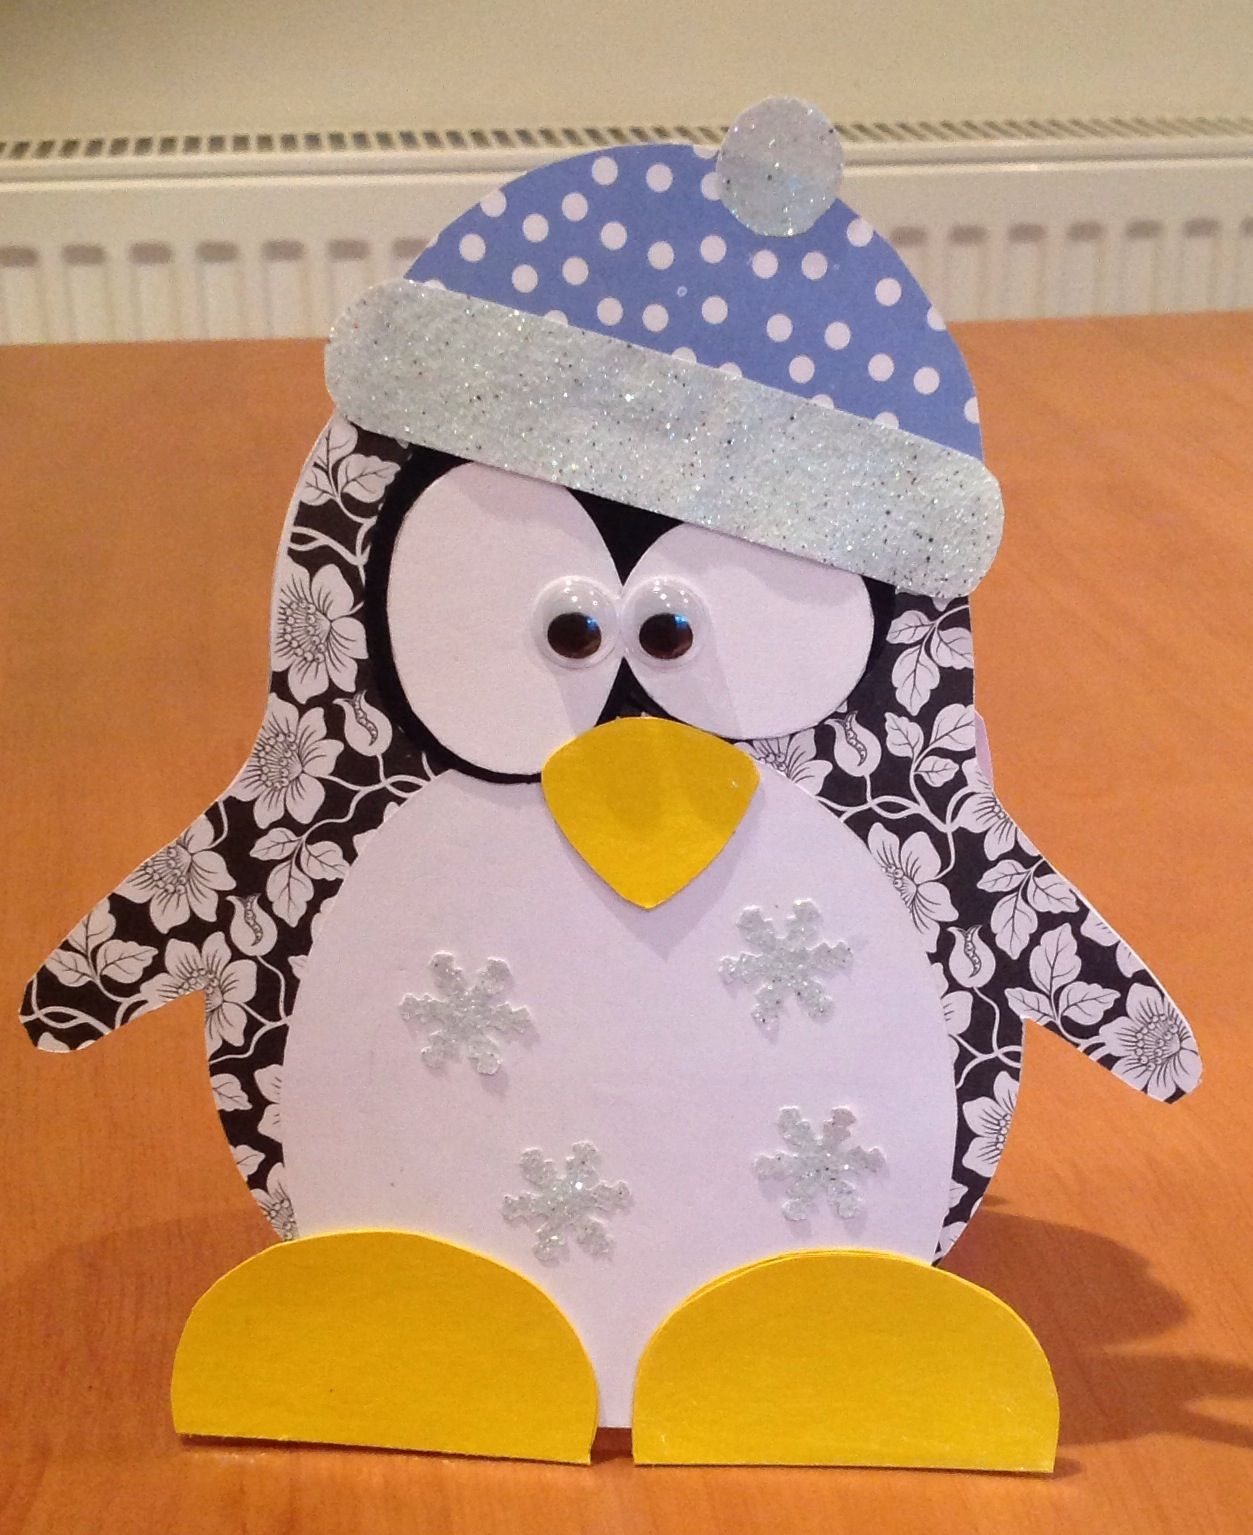 Card Making Ideas Pdf Part - 30: Handmade Penguin Card. Template From Http://www.mamadinis.com/